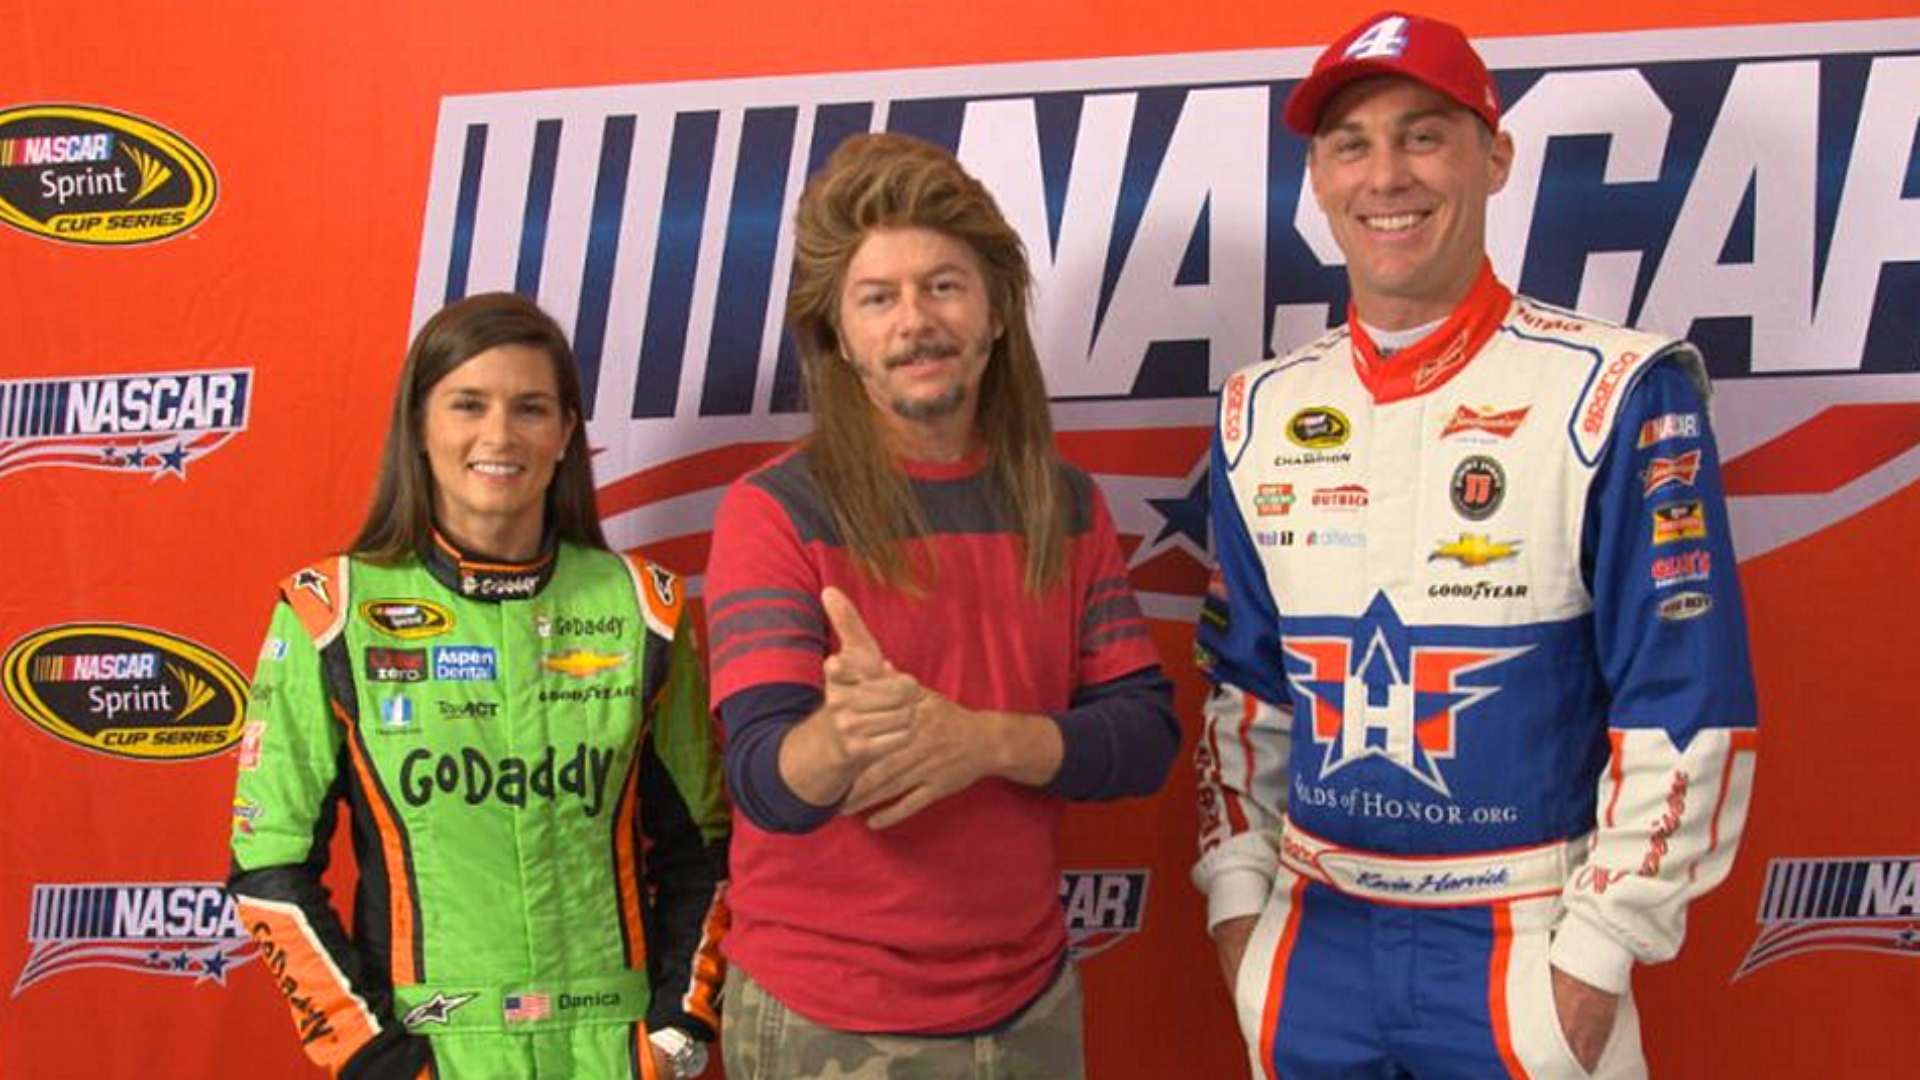 Joe Dirt gives advice to Kevin Harvick, Danica Patrick at Daytona